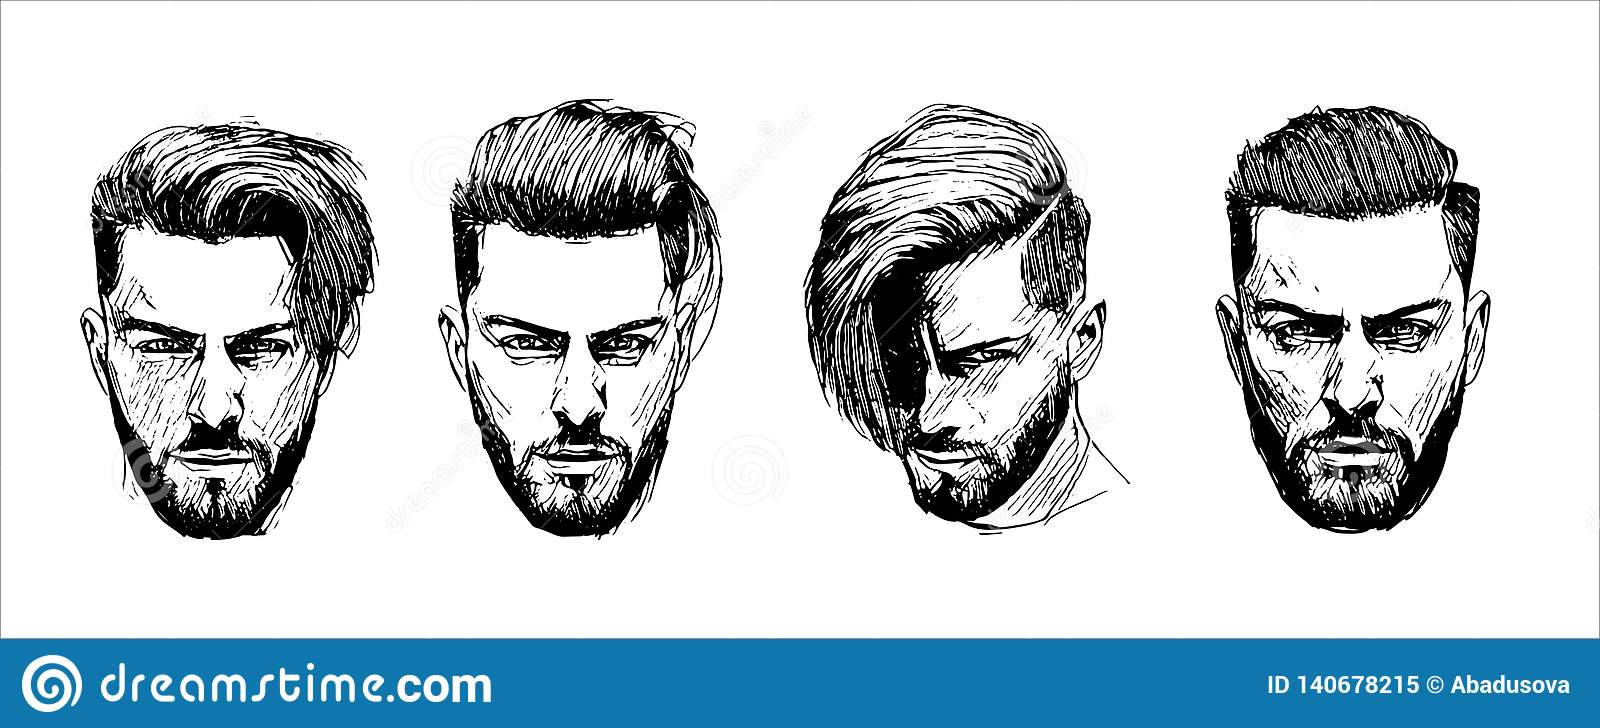 Vector hand drawn man hairstyle silhouettes illustration on white background